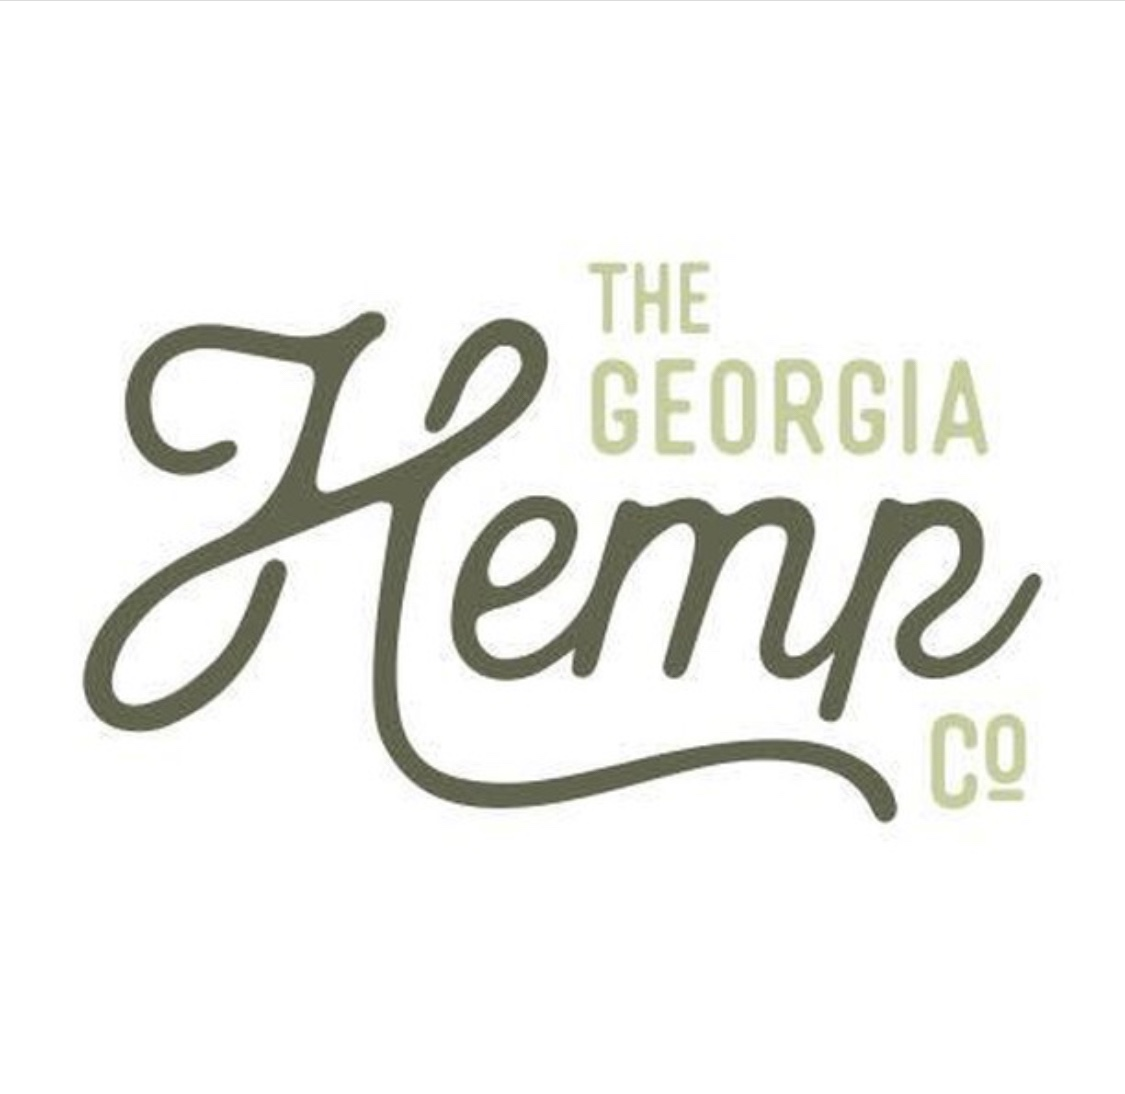 The Georgia Hemp Company - The Georgia Hemp Company is dedicated to delivering high-quality hemp products and advocating for the growing awareness of hemp and CBD education. Every product we sell – foods, wellness products, and more – has been carefully vetted by their team for accuracy and quality. If it doesn't meet The Georgia Hemp Company's standard of excellence, then we won't sell it.